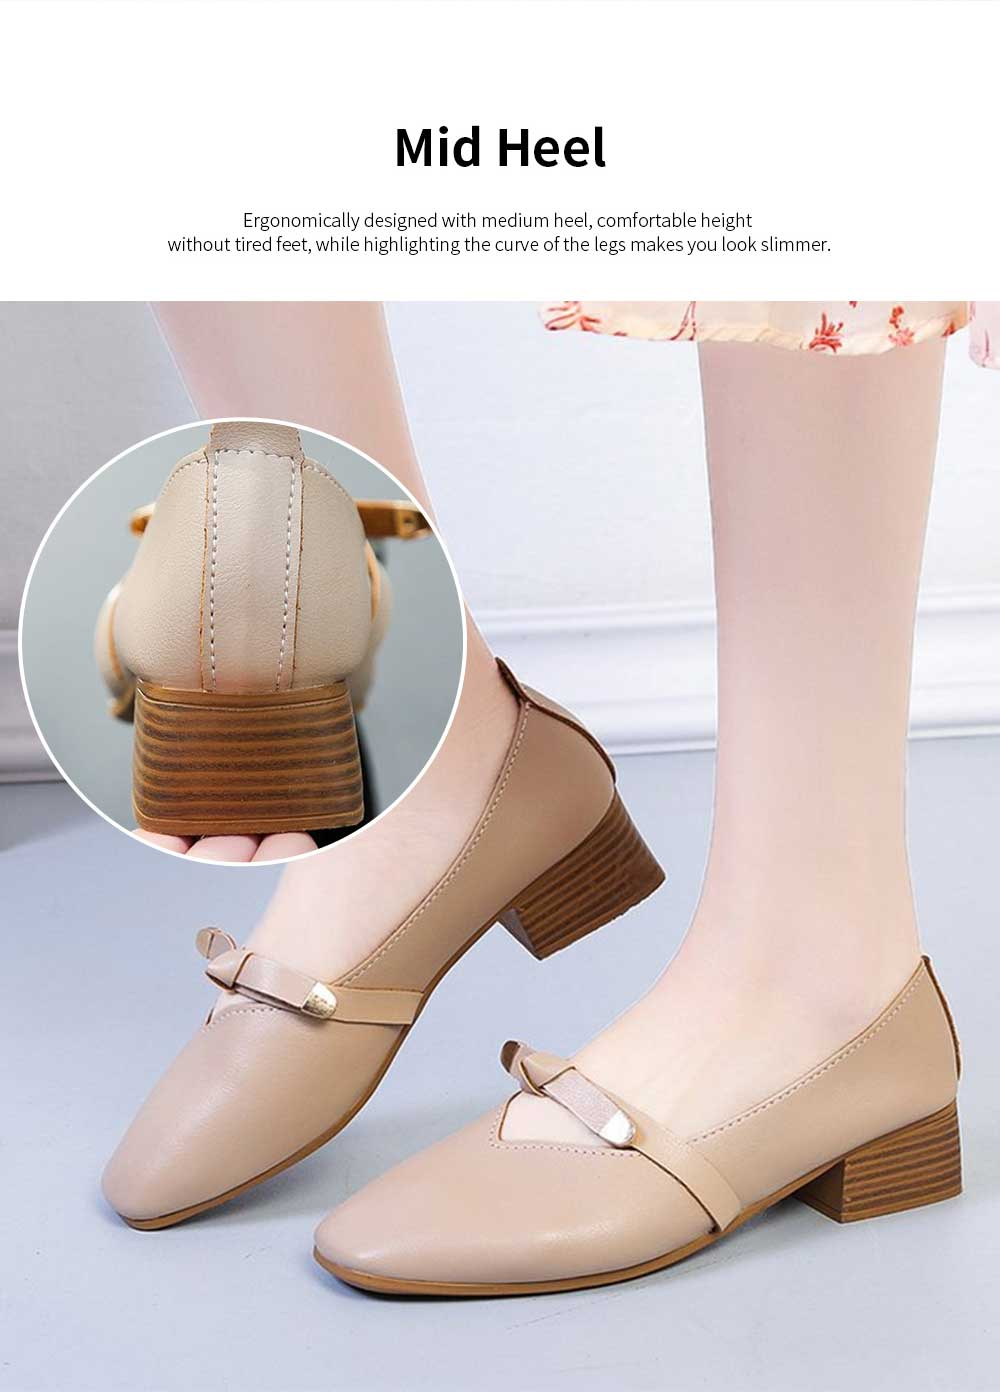 Women's Wide Width Flat Shoes Comfortable Bow Buckle Strap Casual Shoe Mary Jane Square Toe Ballet Flats 4